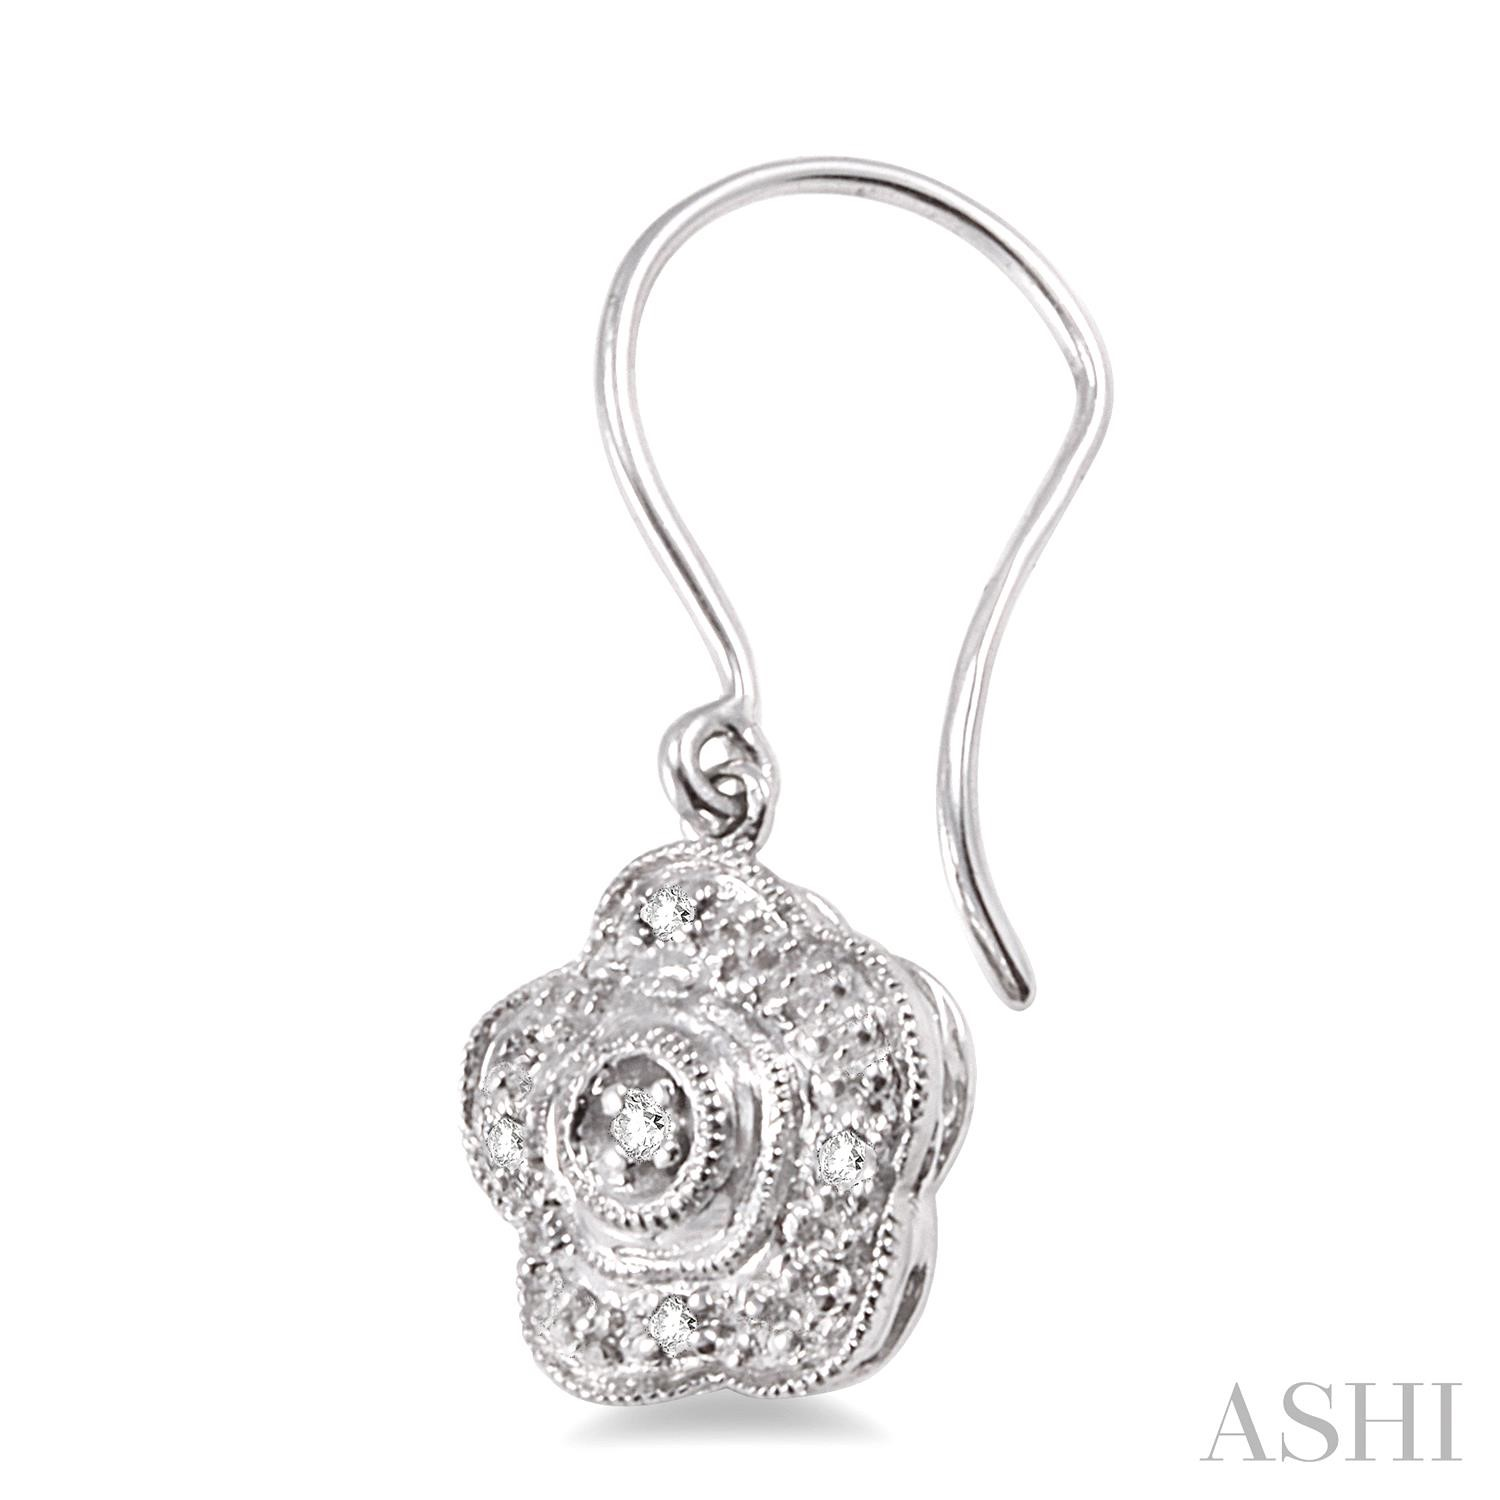 Flower Shape Silver Diamond Earrings